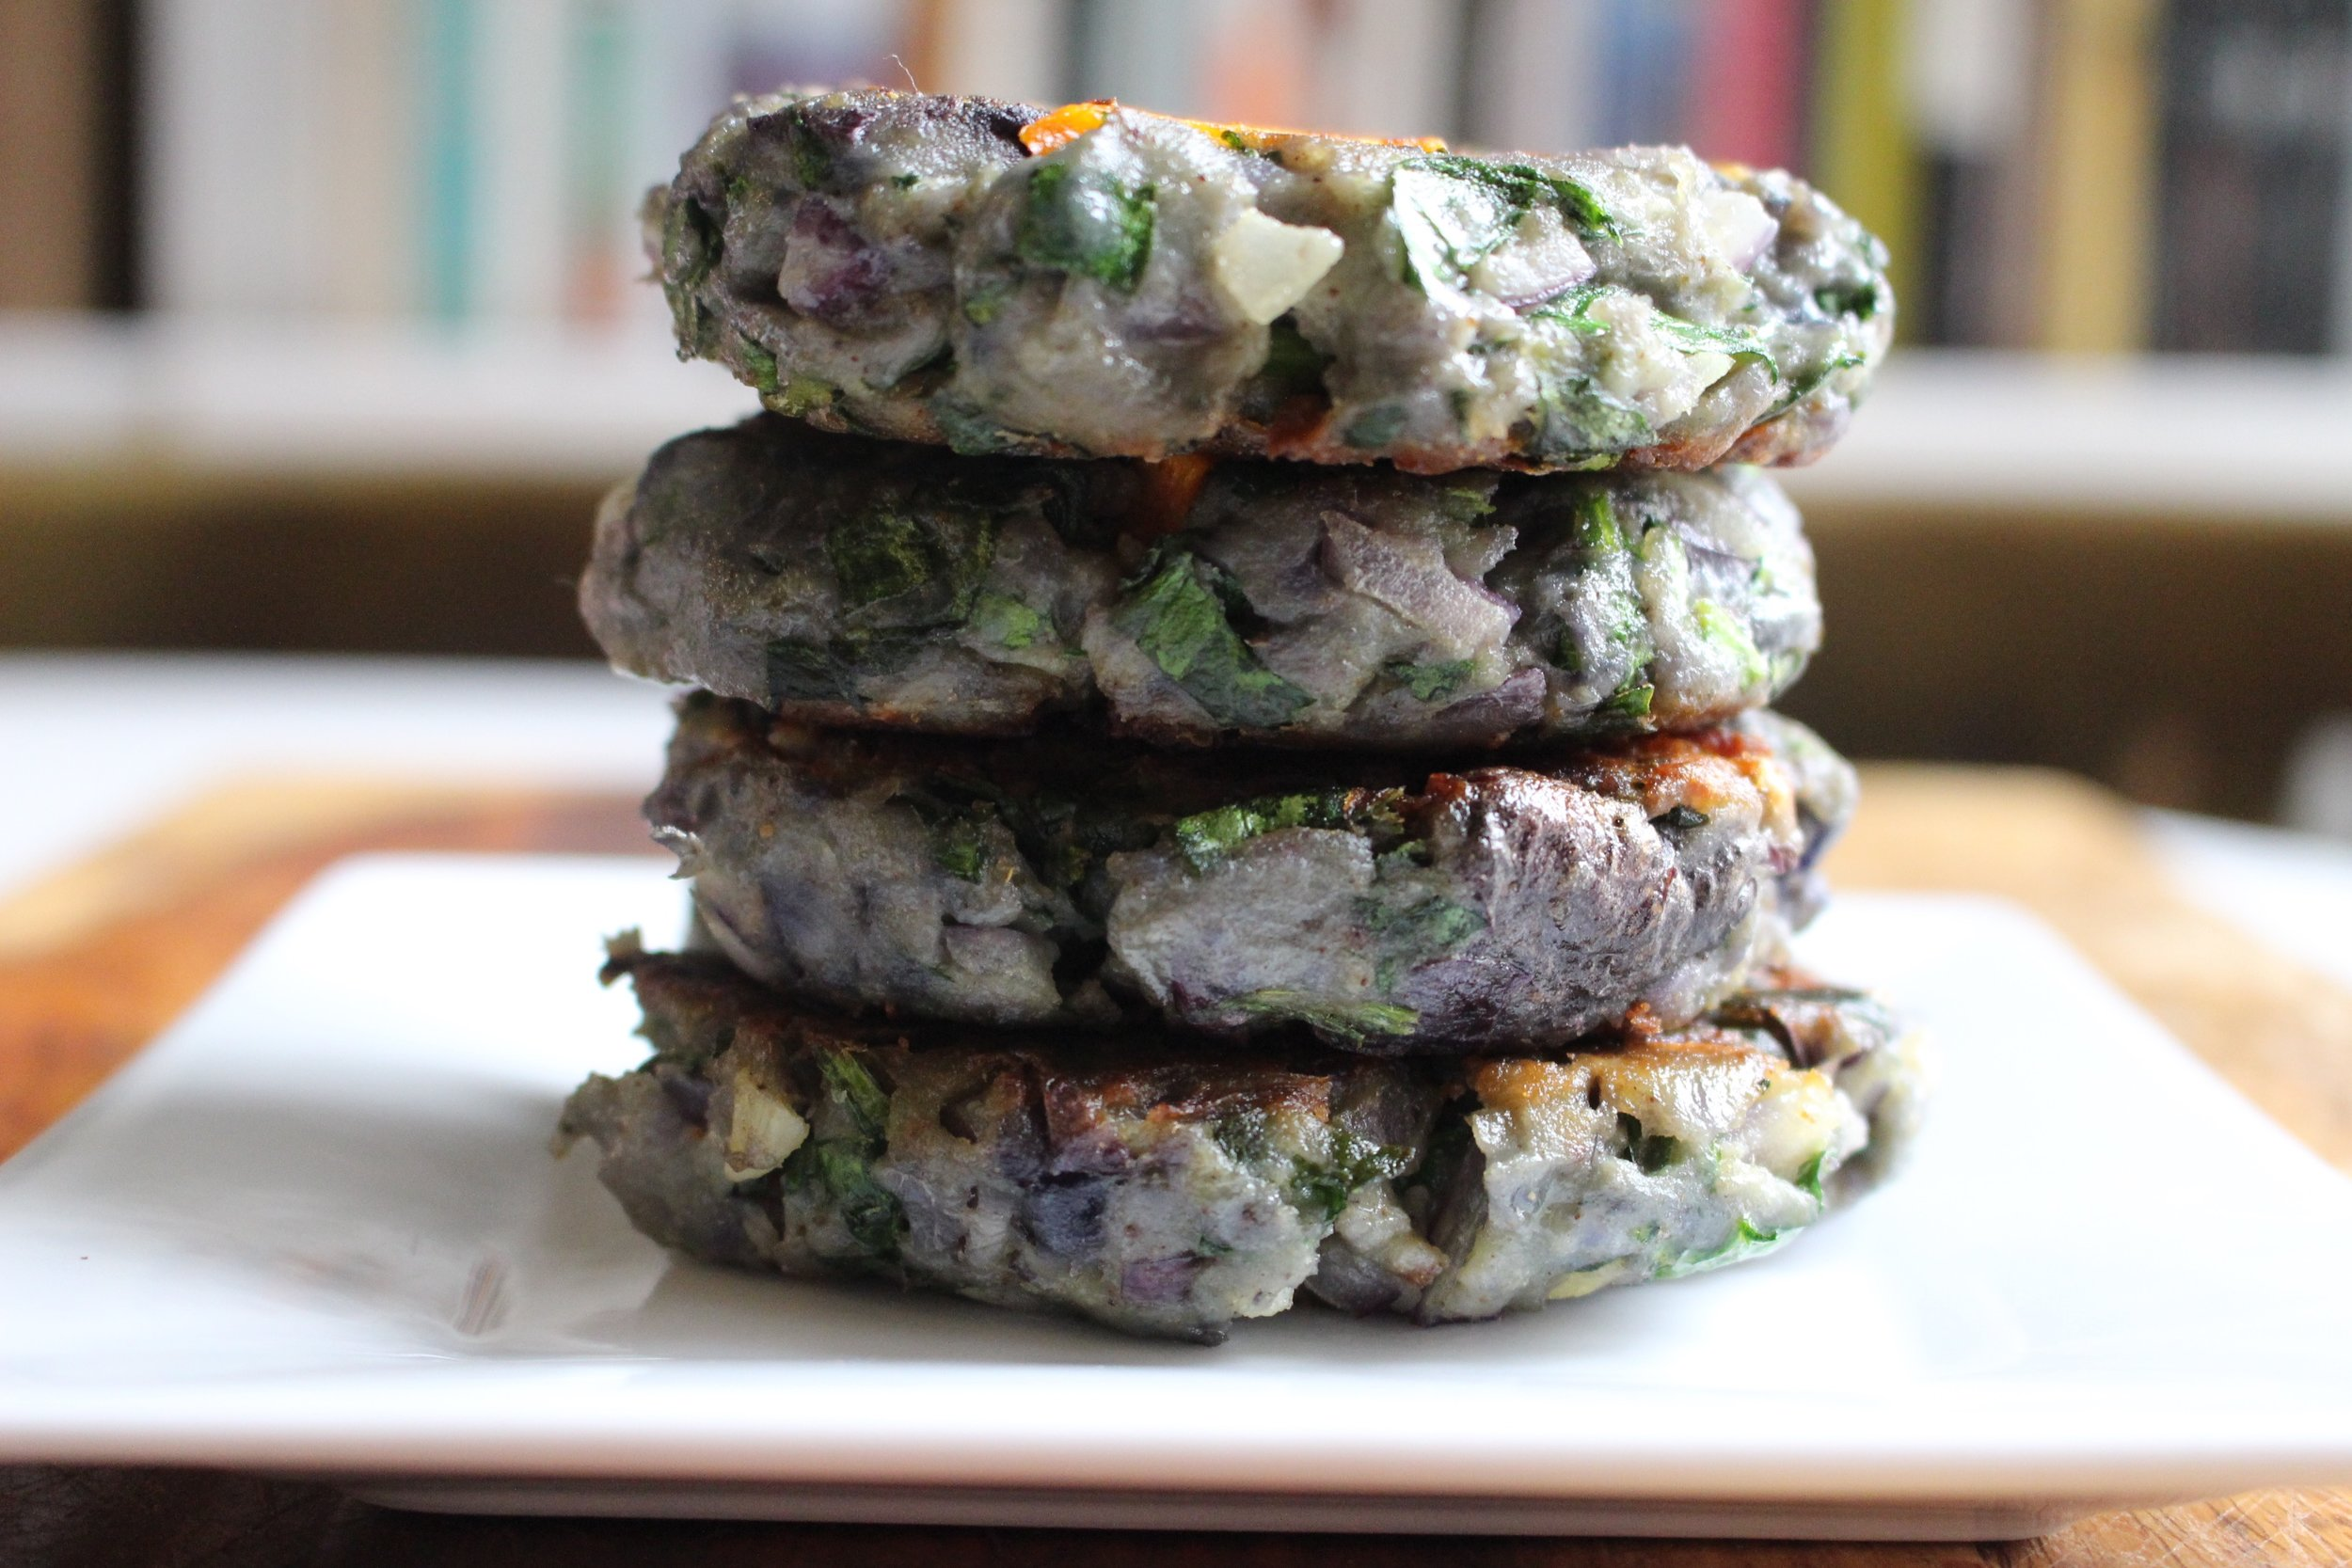 urple potato patties | Me & The Moose. Garam Masala fancies up these potato and spinach patties that are an otherwise simple lunch or dinner. The lightening bolt makes these irresistible to kiddos. #purplepotatoes #potato #veggieburgers #HarryPotterfood #HarryPotter